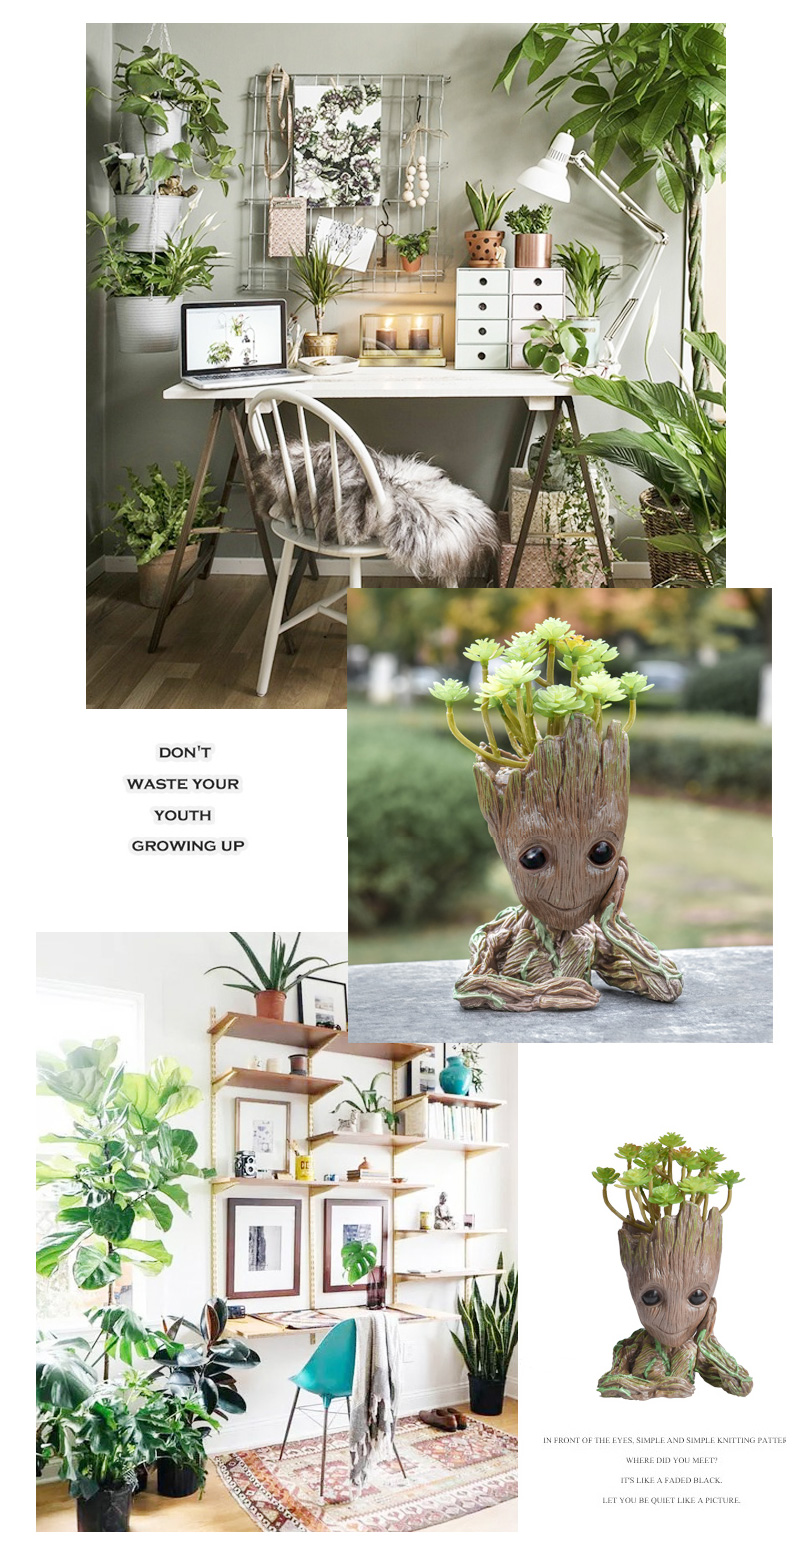 Baby Groot Flower Pot Suitable for Living Room Bed Room and study Room for Full Greenery in House 8